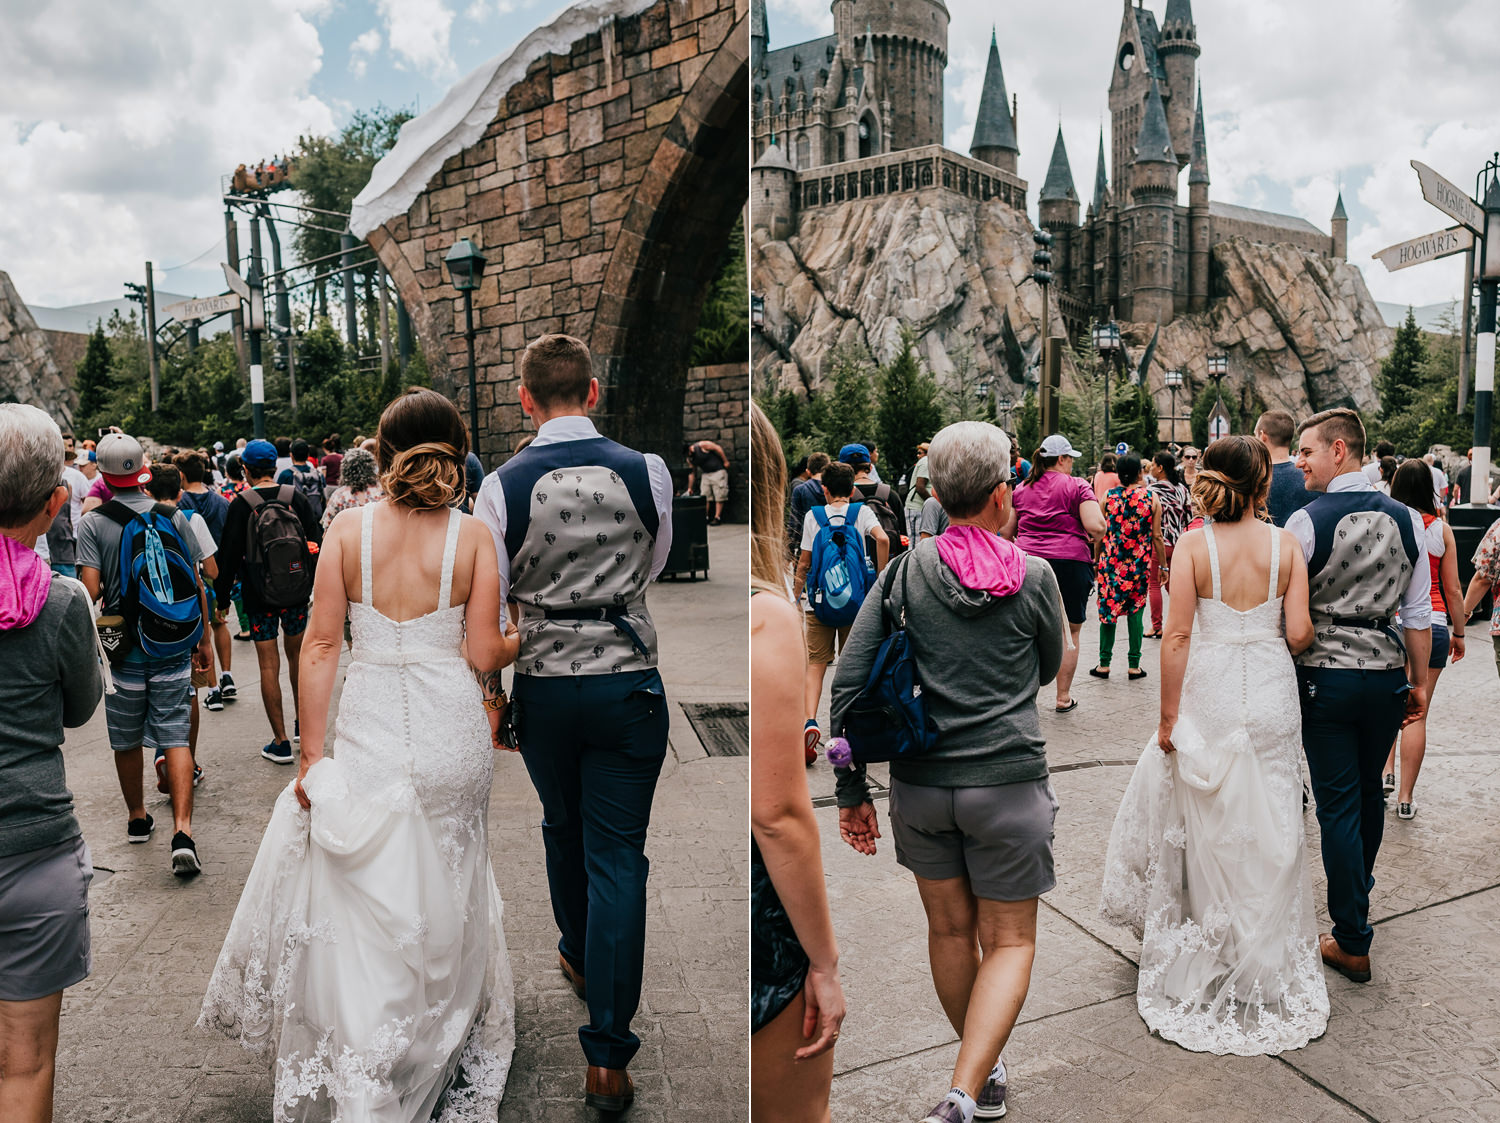 couple in wedding attire walking towards hogwarts in universal studios